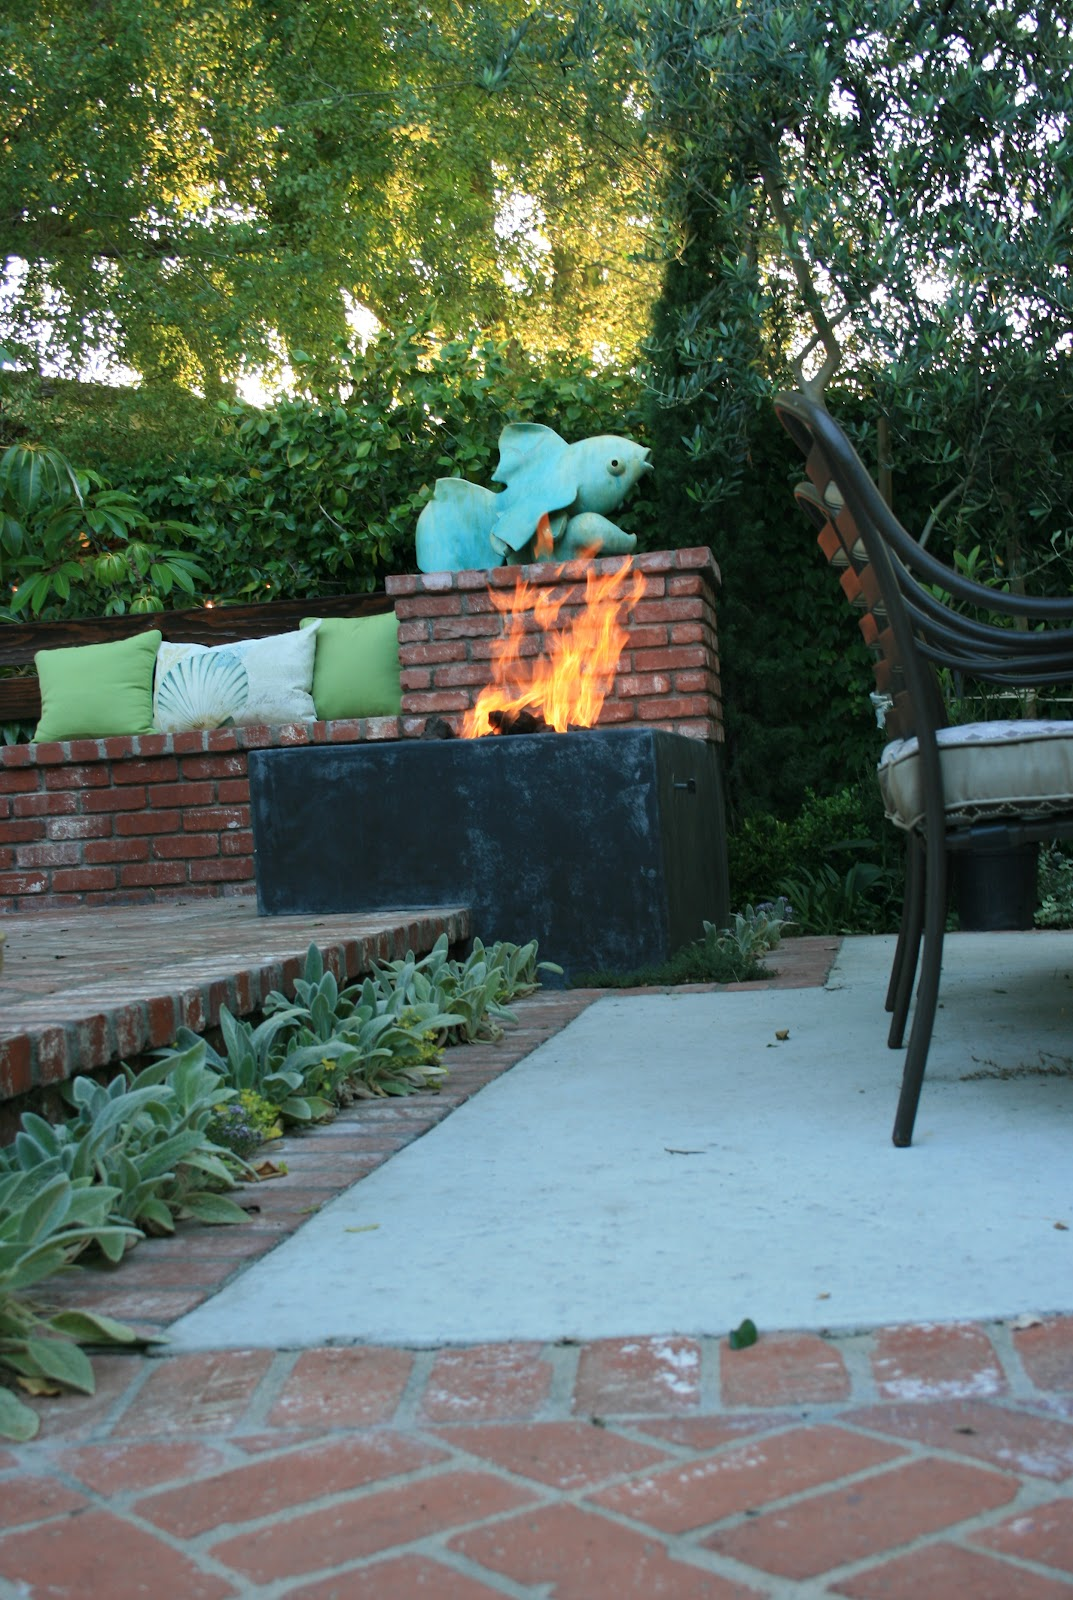 ciao! newport beach: a backyard fire pit on small backyard gazebo ideas, small backyard bathroom ideas, small bbq pit ideas, small backyard water fountains ideas, small backyard covered deck designs, backyard shed bar ideas, small backyard lounge ideas, small backyard grill ideas, small backyard fence ideas, small backyard stone ideas, small backyard retaining wall ideas, small backyard games ideas, small backyard putting green ideas, small backyard tree house ideas, small backyard greenhouse ideas, small backyard brick ideas, diy backyard bar ideas, small backyard garage ideas, cheap backyard privacy ideas, small backyard landscaping along fence,